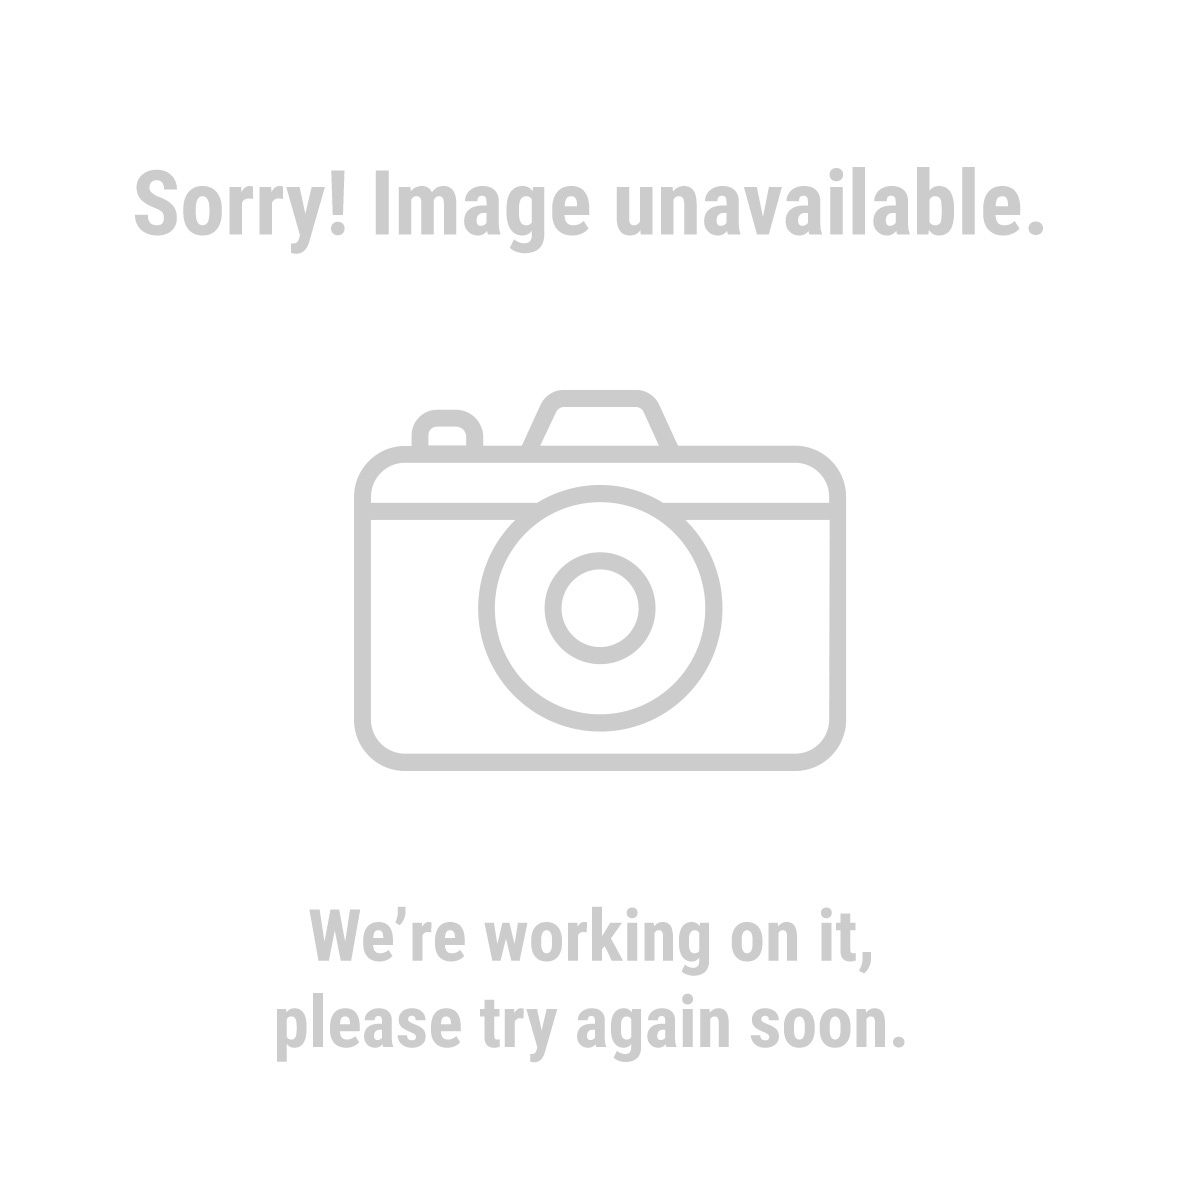 Split Leather Work Gloves 5 Pair